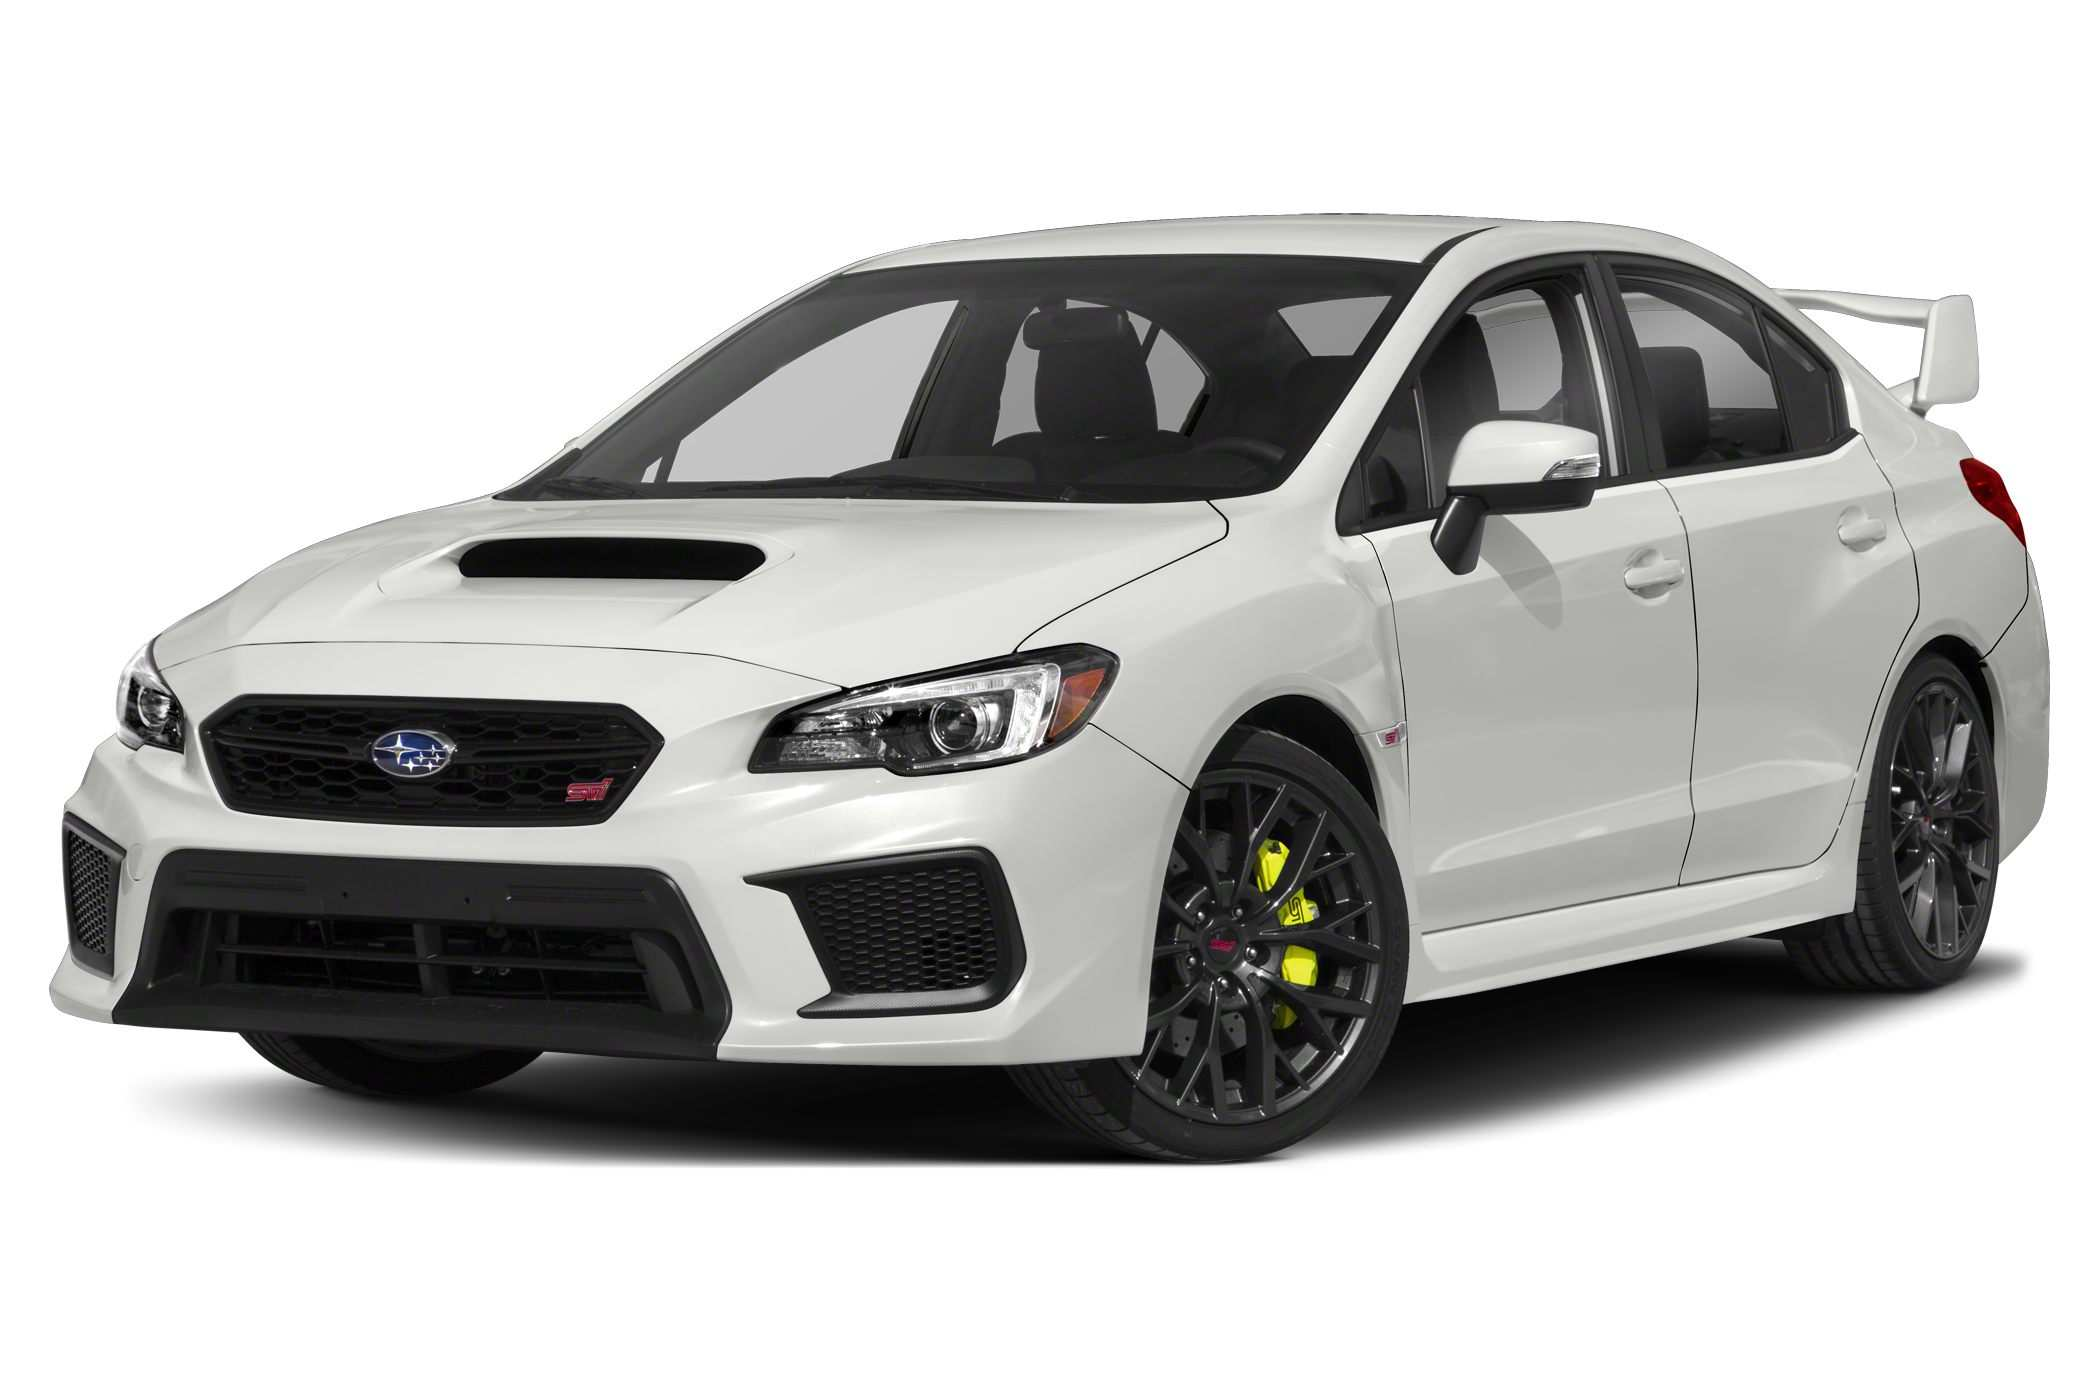 72 Concept of 2019 Subaru Sti Specs Pictures for 2019 Subaru Sti Specs